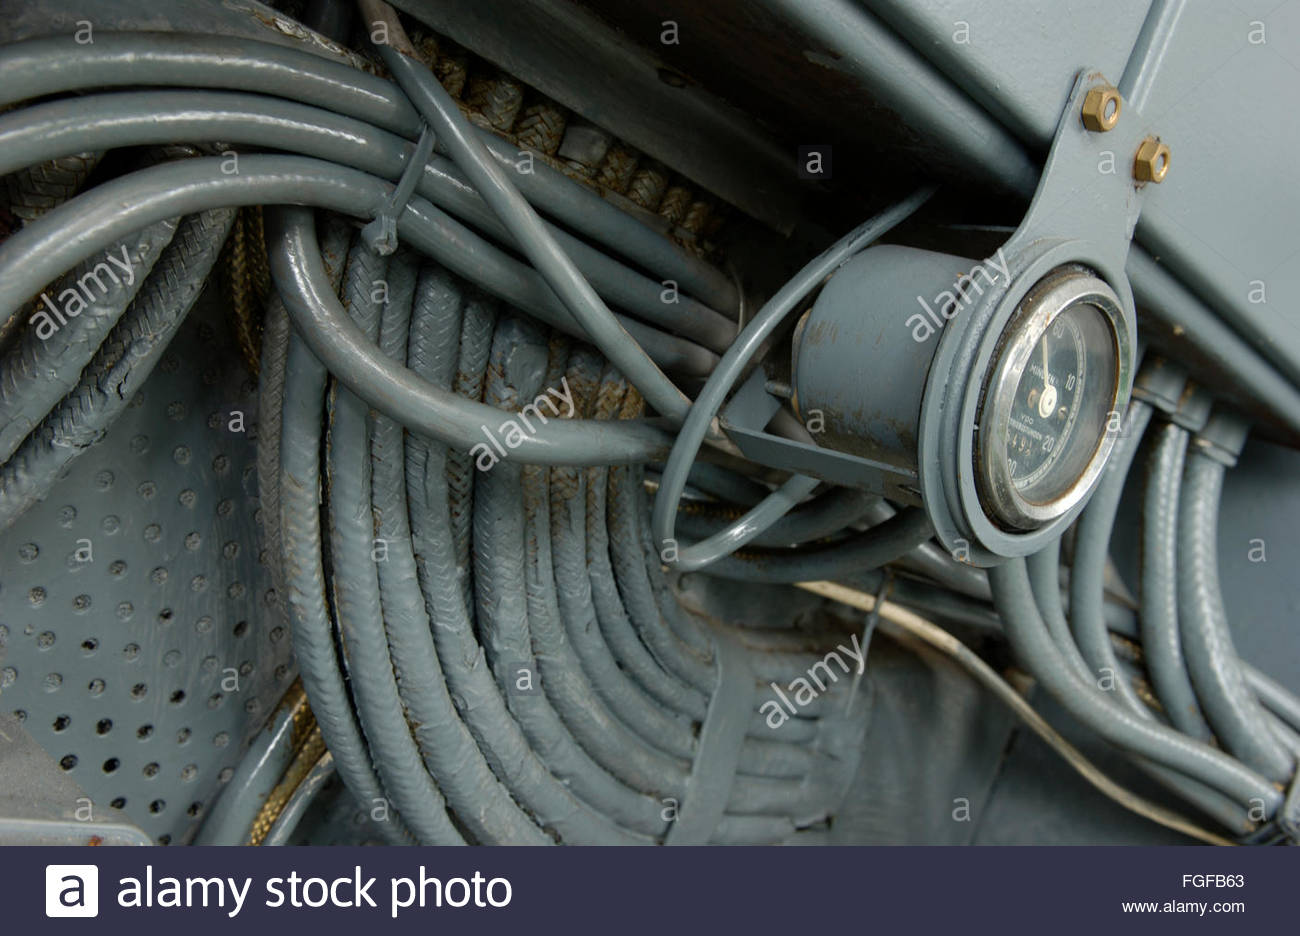 wiring harness stock photos wiring harness stock images alamy rh alamy com german electrical wiring regulations german electrical wiring regulations